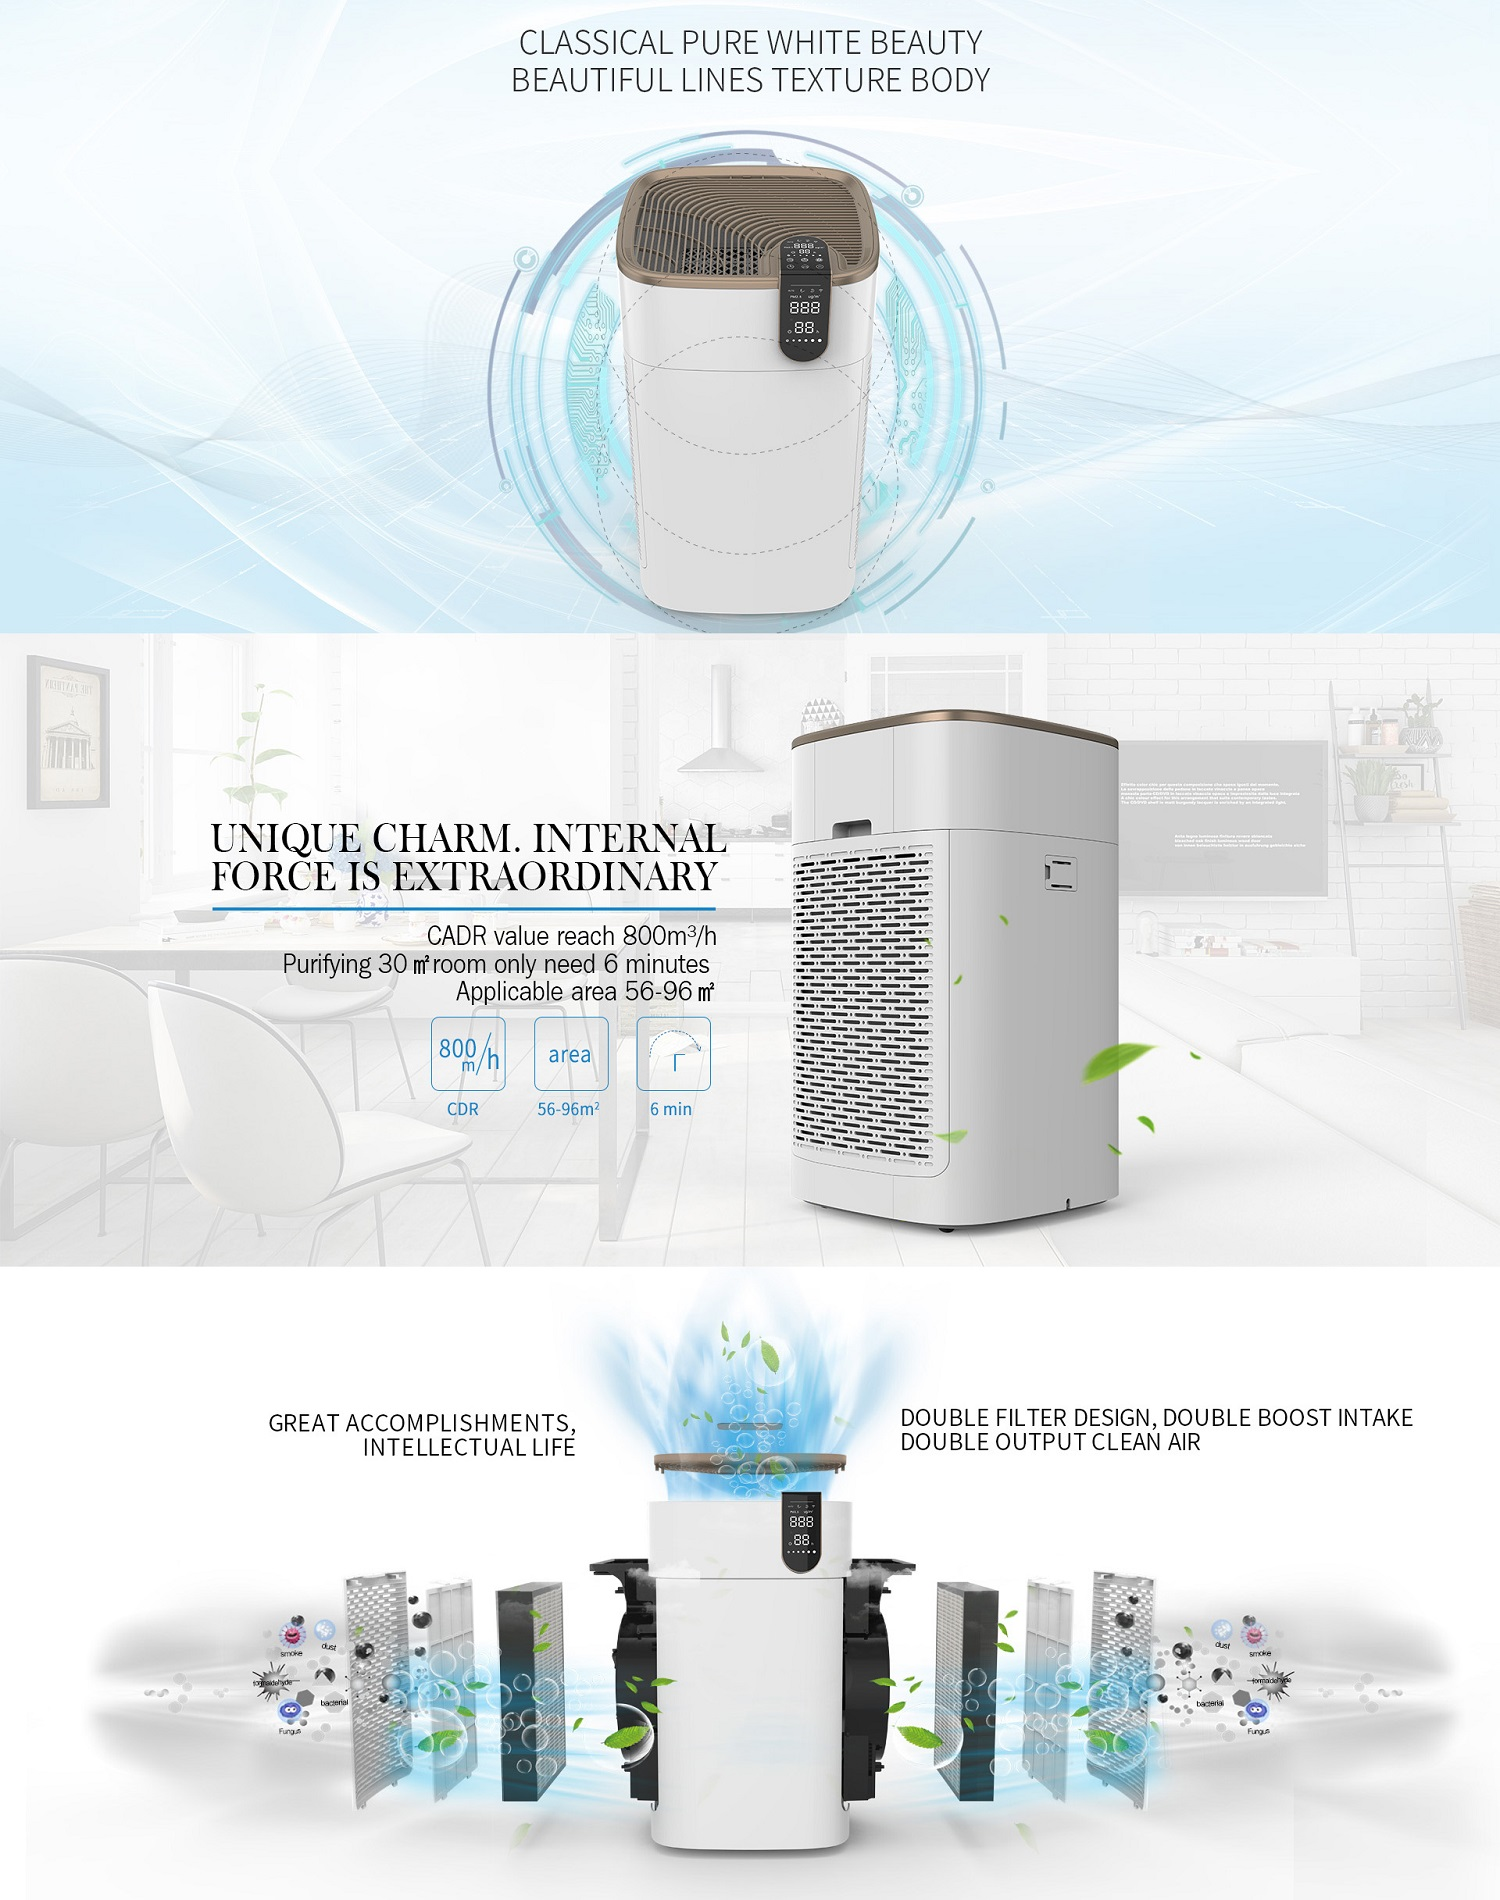 Olansi K15B new trending product DC 110V 220V 880m3/h CADR ozone air purifier for household air purification